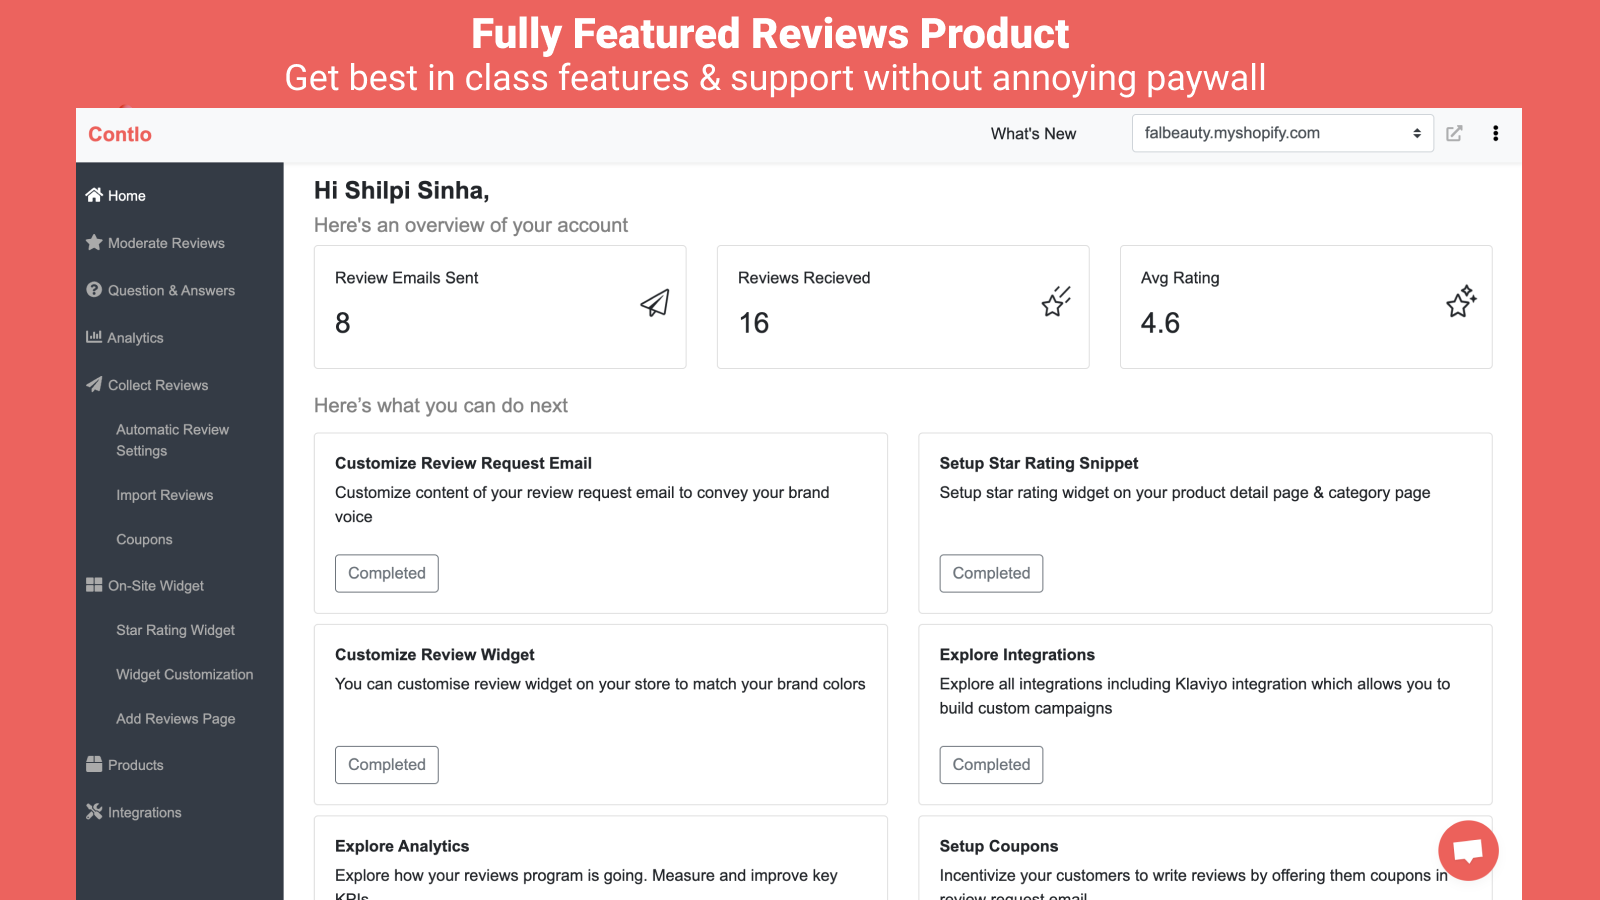 Best in class features with no annoying paywall - for free